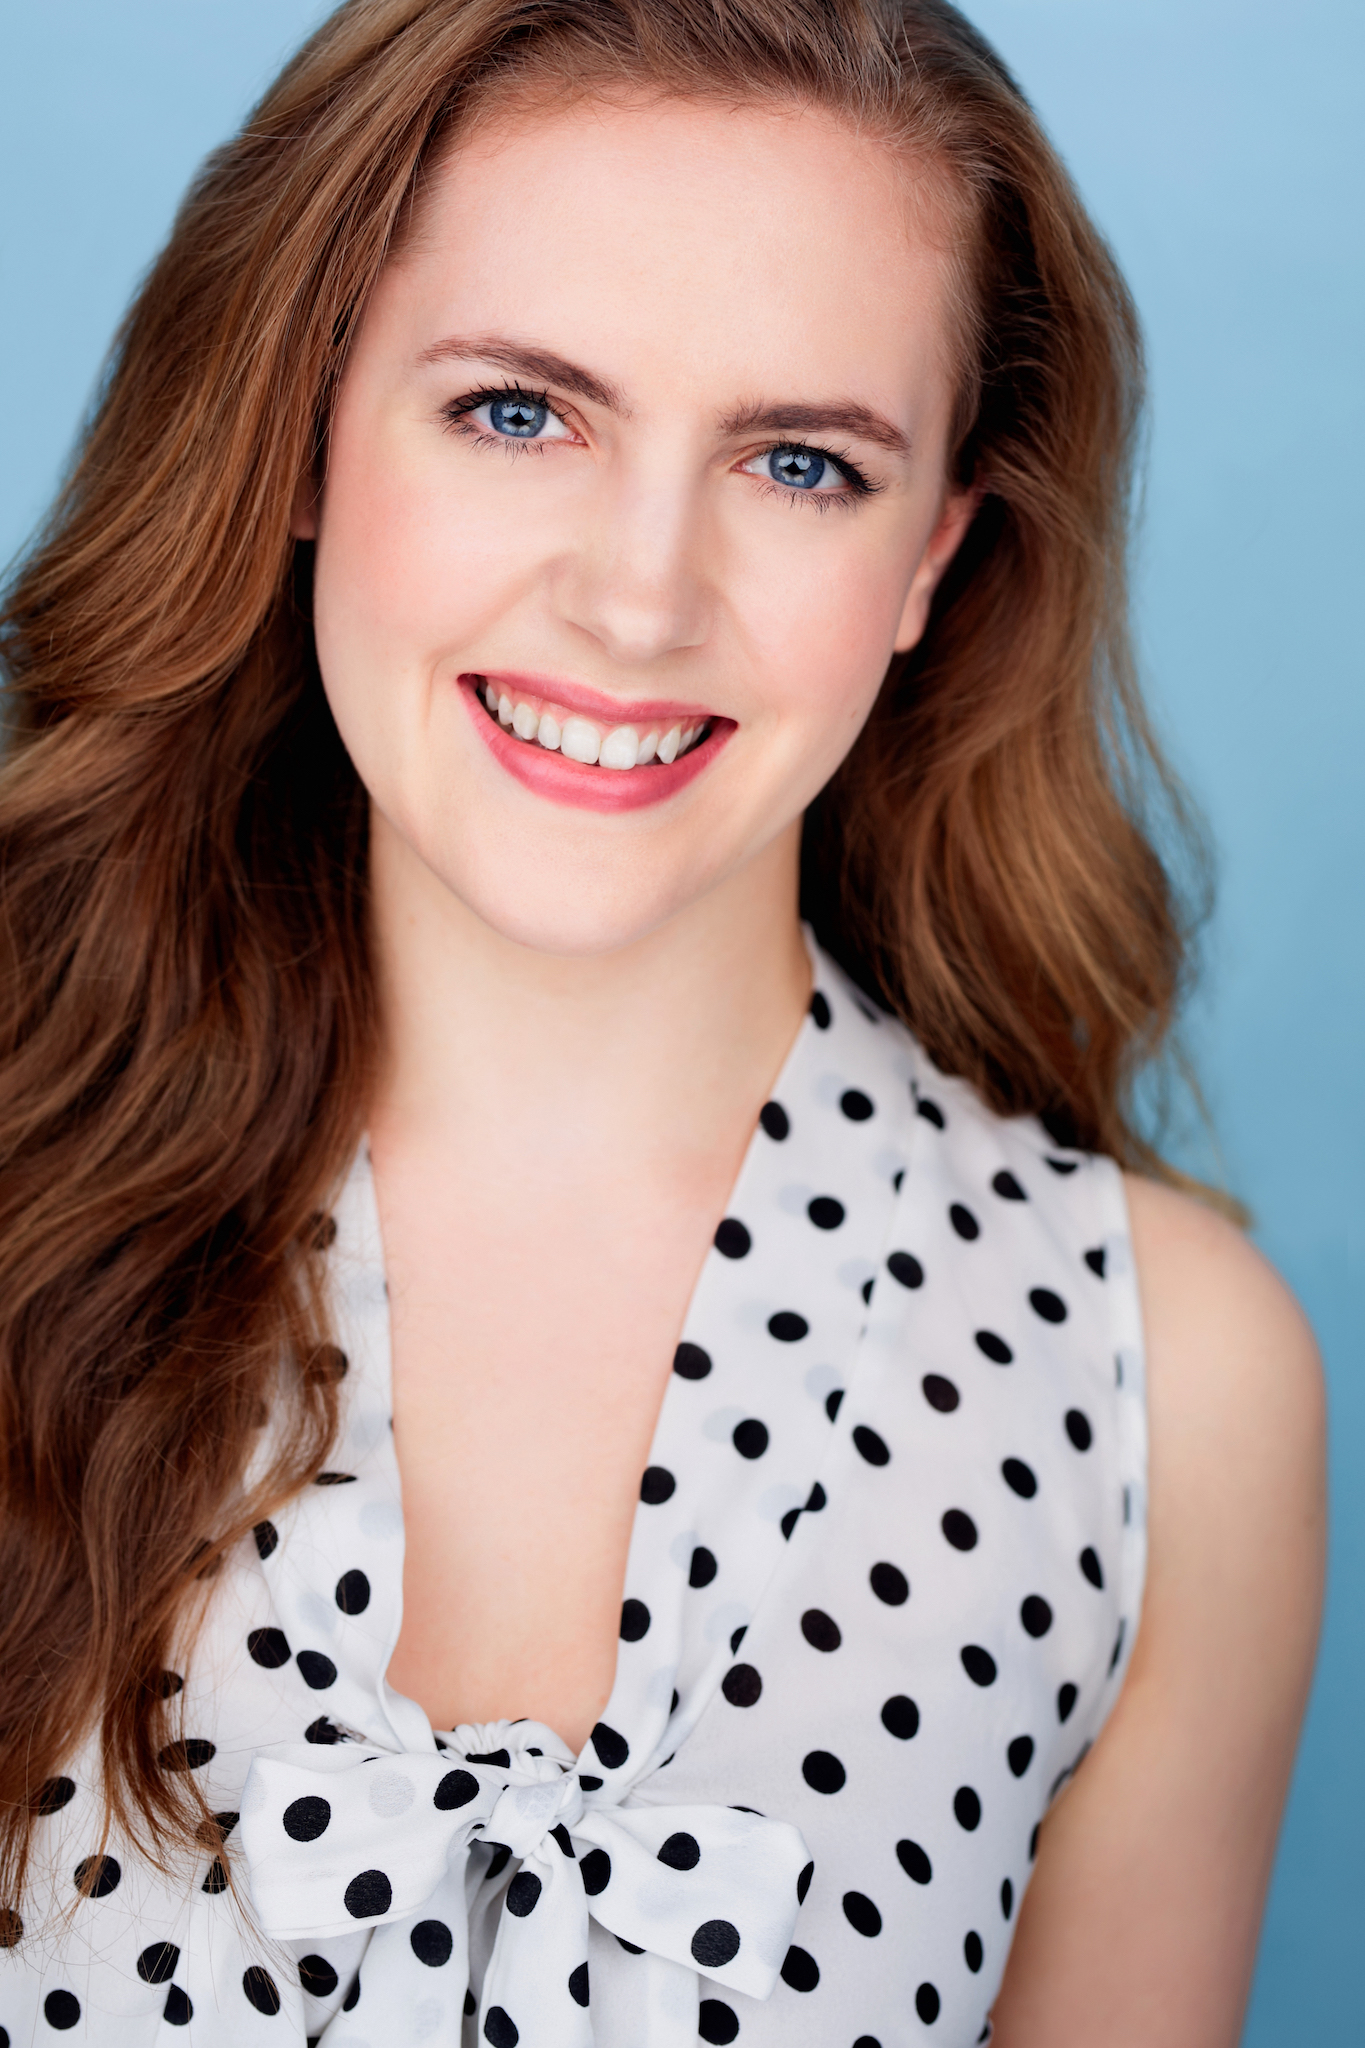 Actor, Singer, Dancer, Creator - Welcome to my website! Here you will find news about upcoming performances and projects, my headshot/resume, and videos. Feel free to contact me with any questions, comments, or just to say hi!